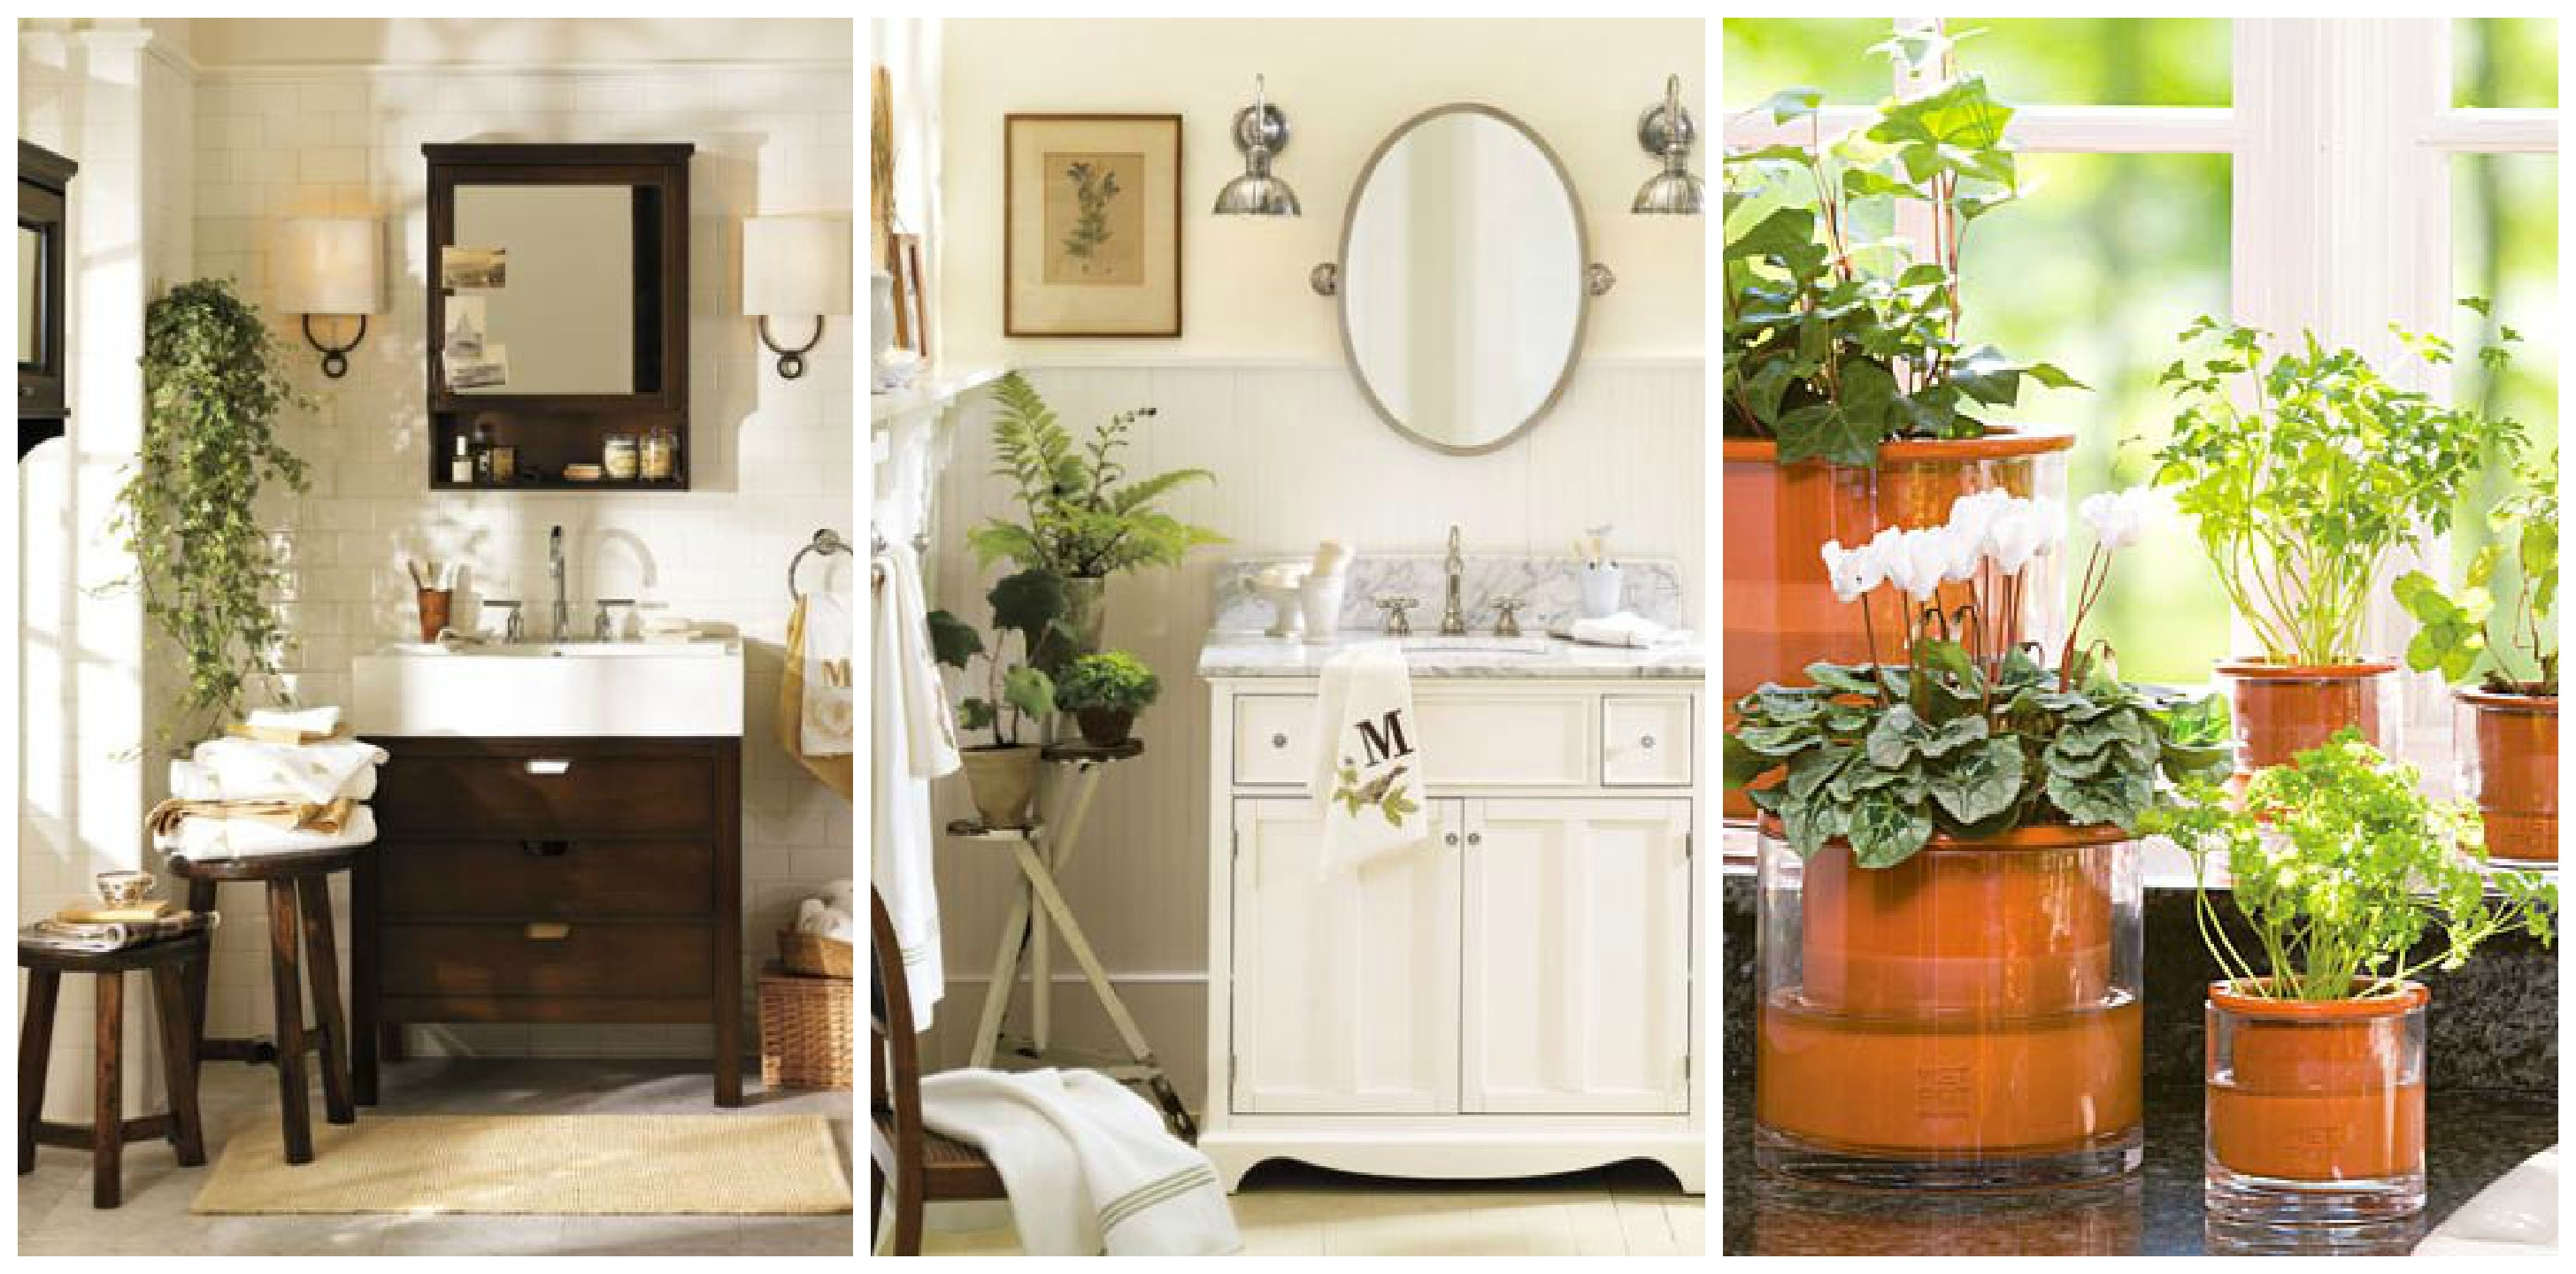 5 simple yet creative bathroom decor ideas uptowngirl for Home and garden bathroom ideas